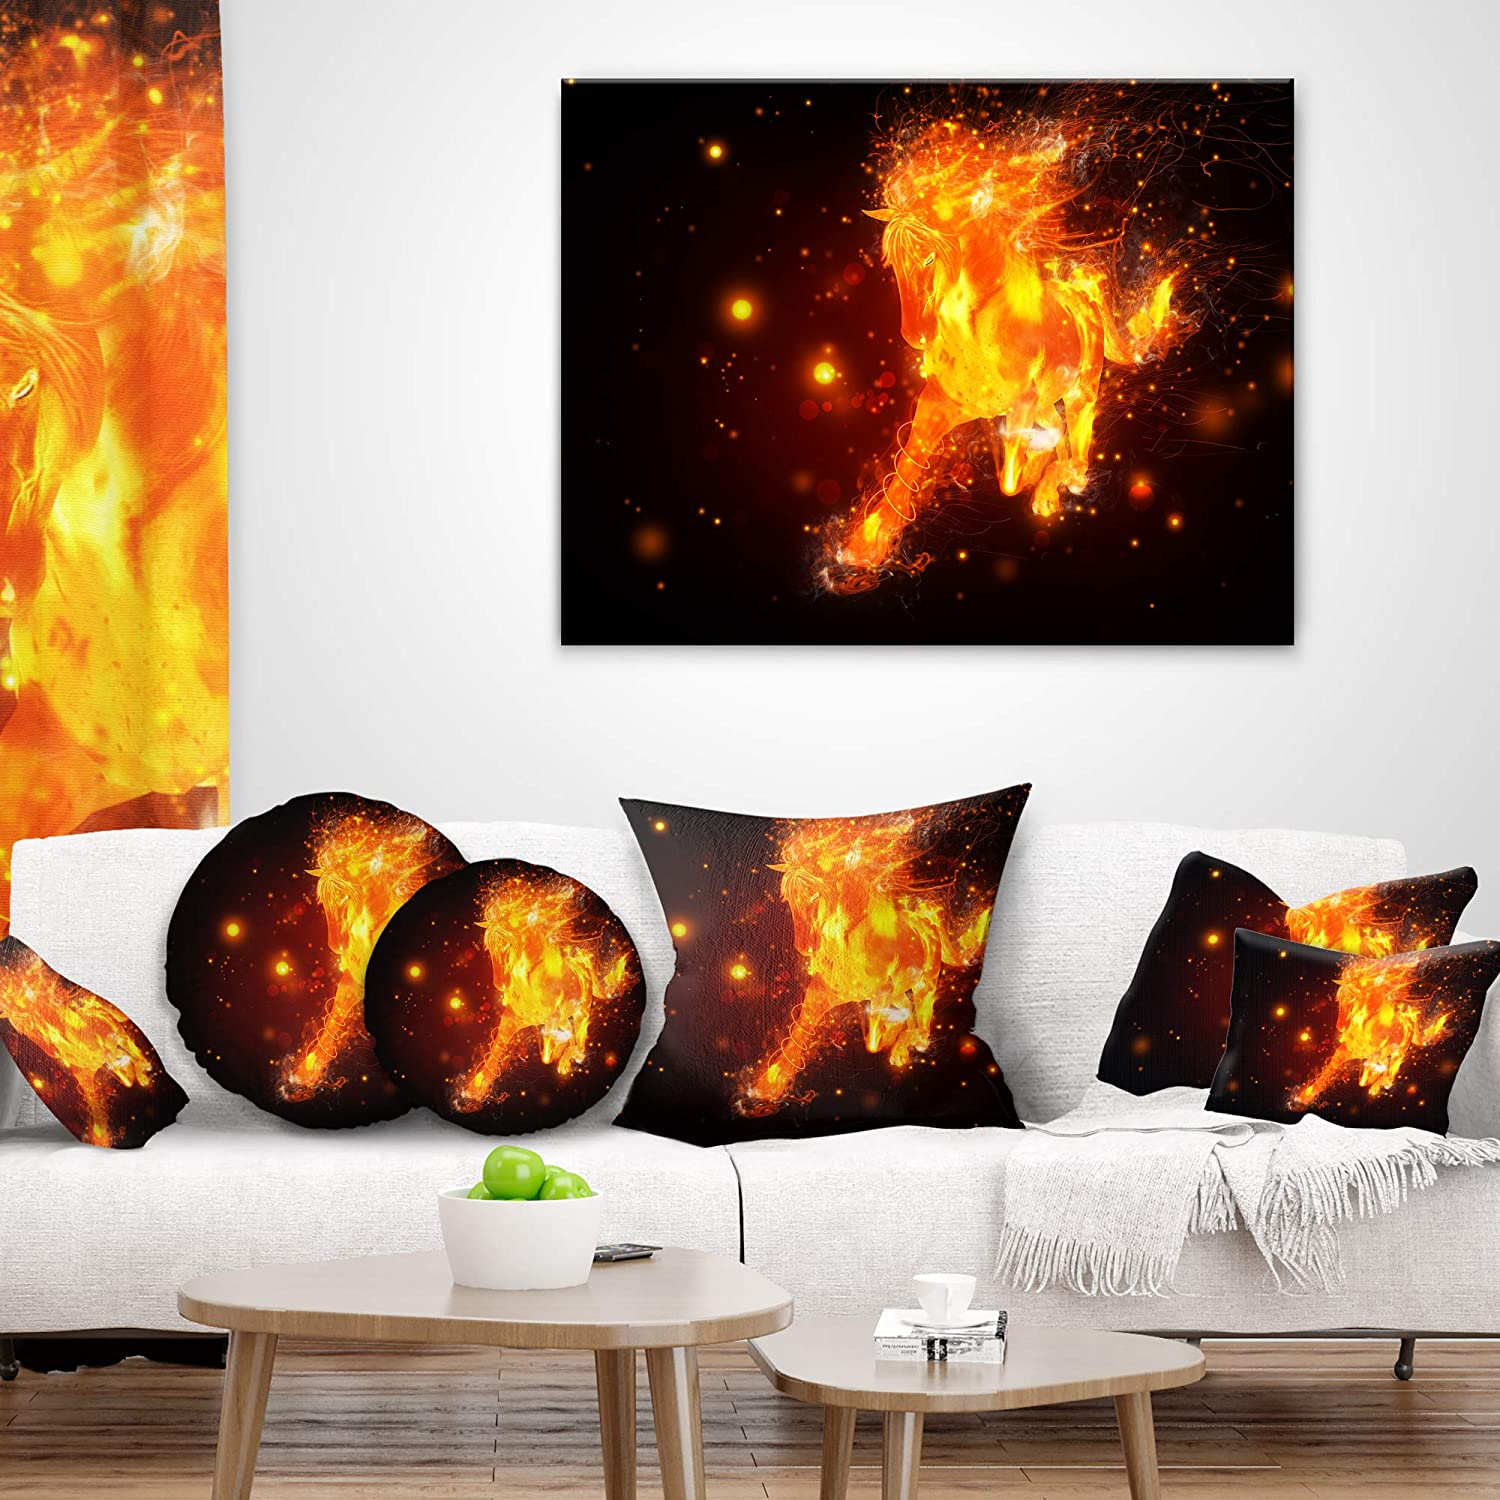 x 26 in Sofa Throw Pillow 26 in in Insert Printed On Both Side Designart CU13455-26-26 Abstract Running Fire Horse Animal Cushion Cover for Living Room